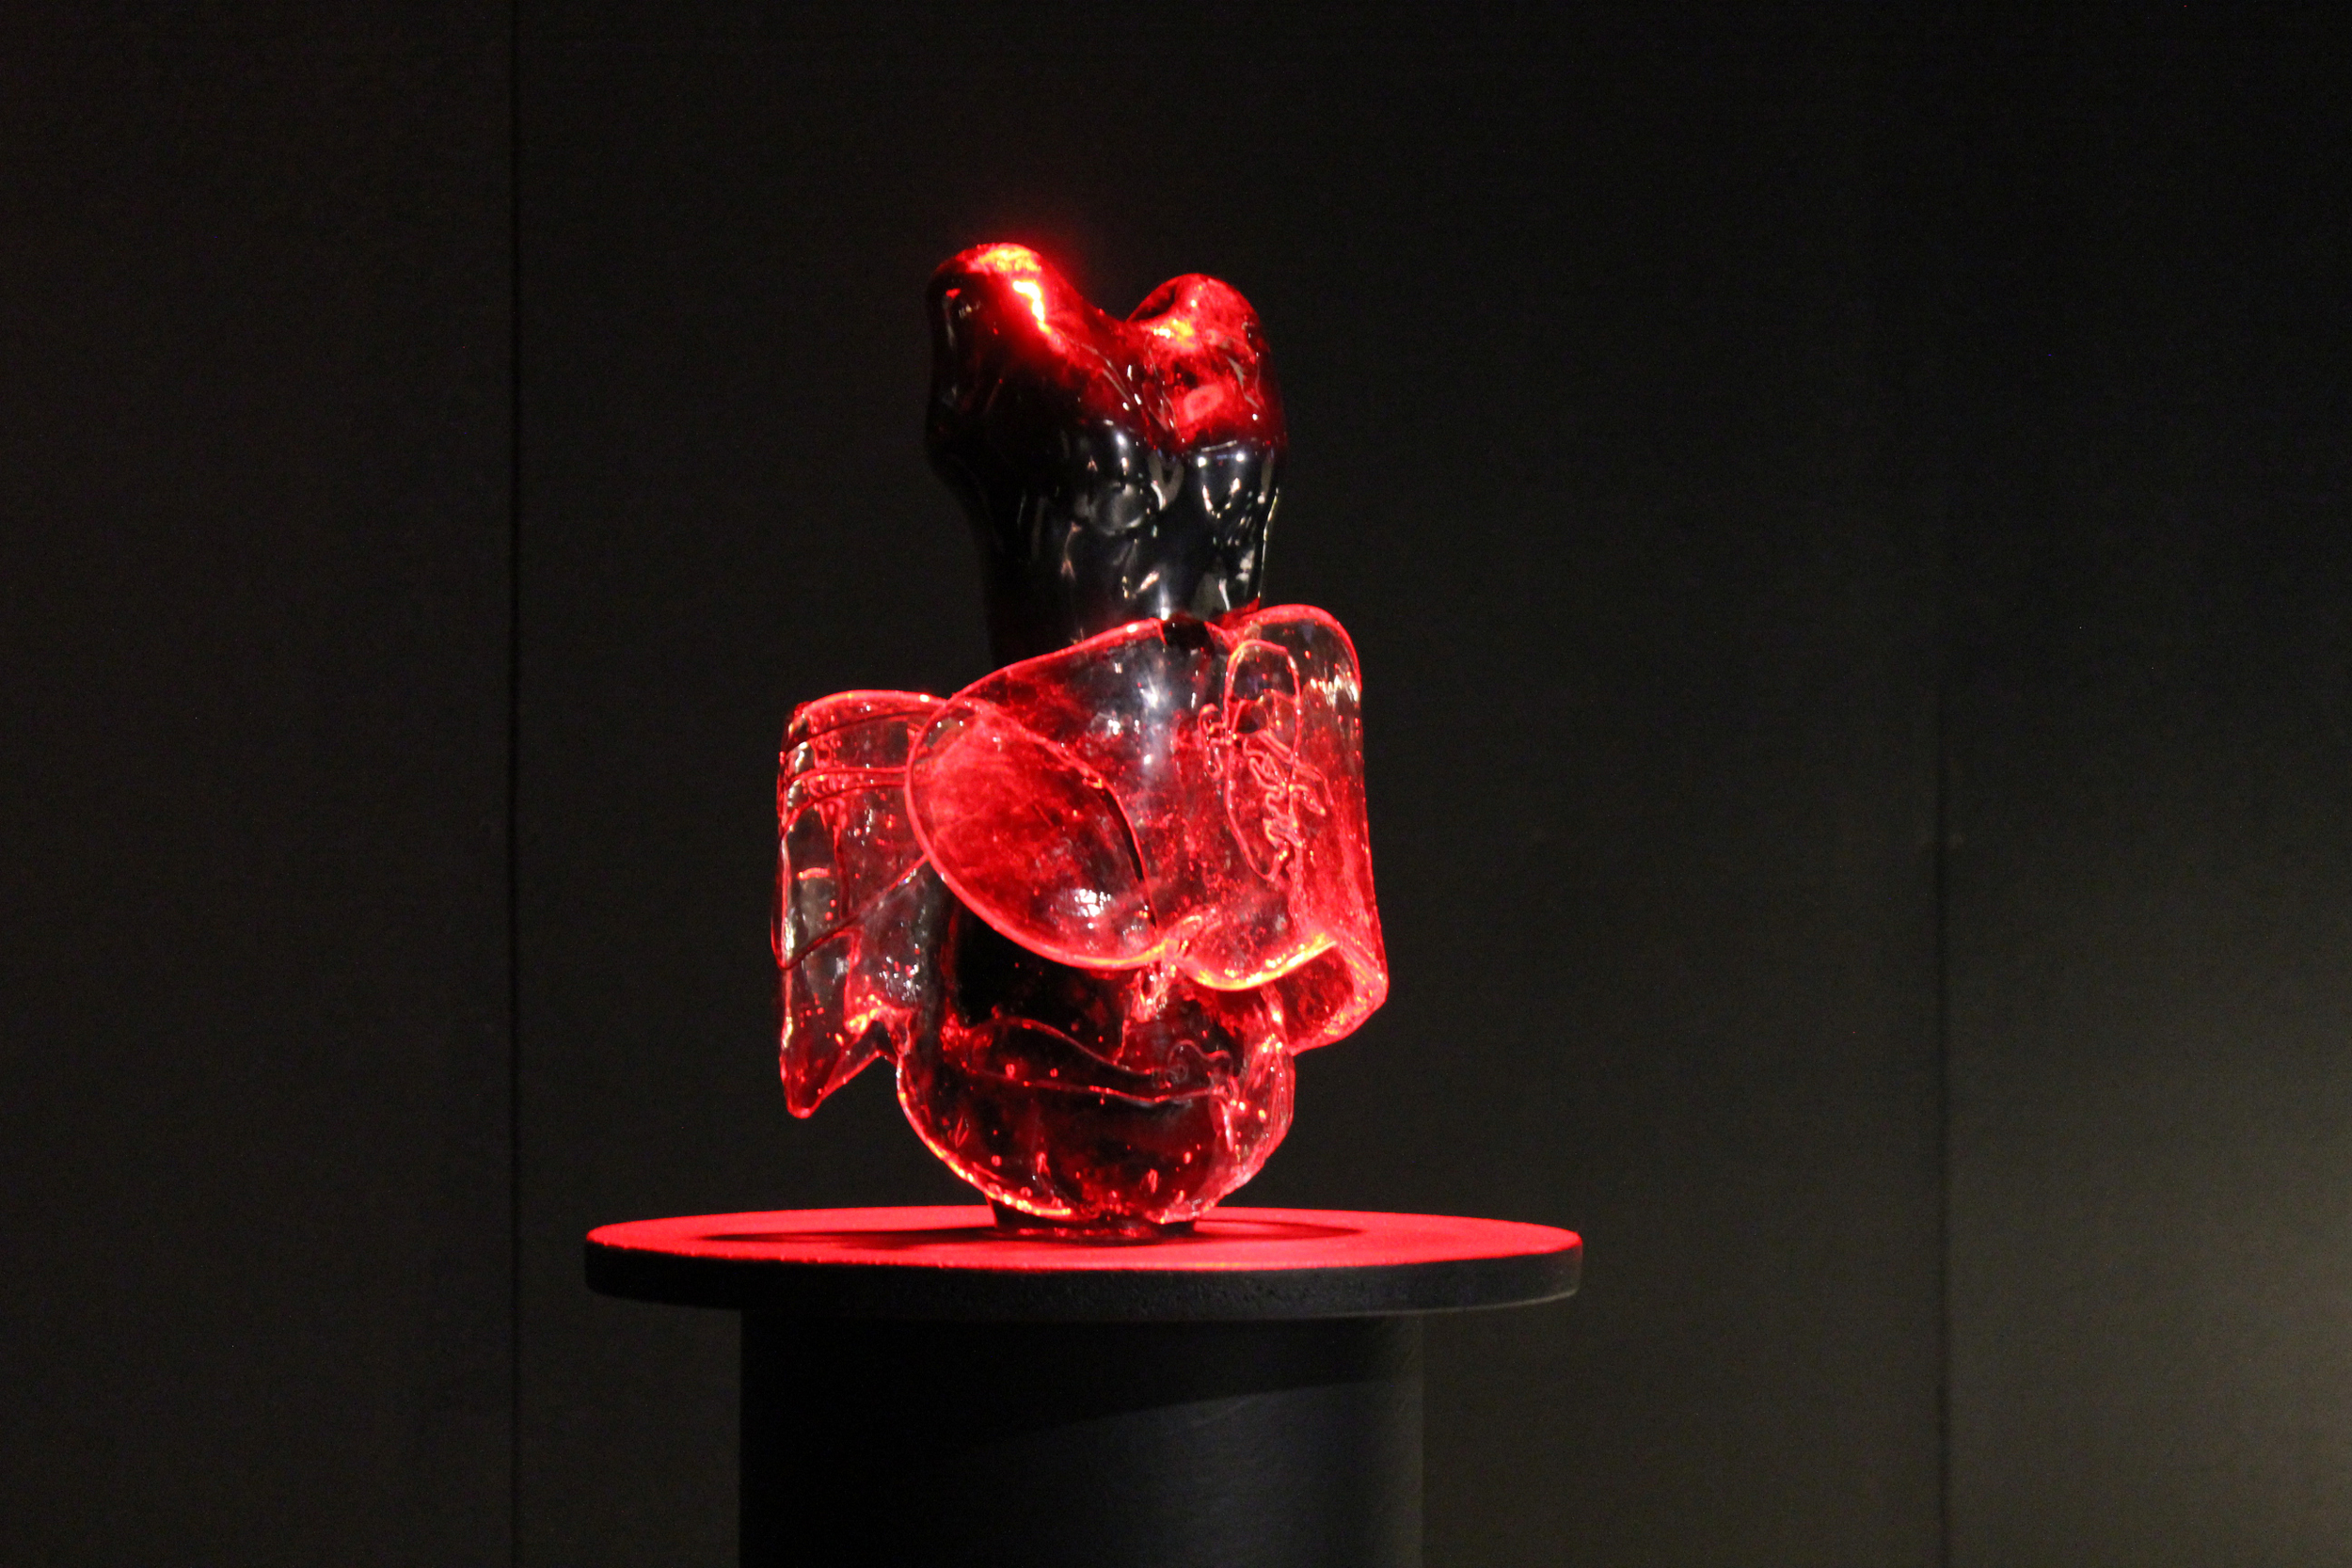 Going Live ✤ 2016 ✤ Blown and Hot Cast Glass with Copper Wire Inclusion ✤ 4 x 7 x 12 in 10 x 18 x 30.5 cm The image above show the piece displayed at an exhibition with a red spotlight to highlight its current significance.